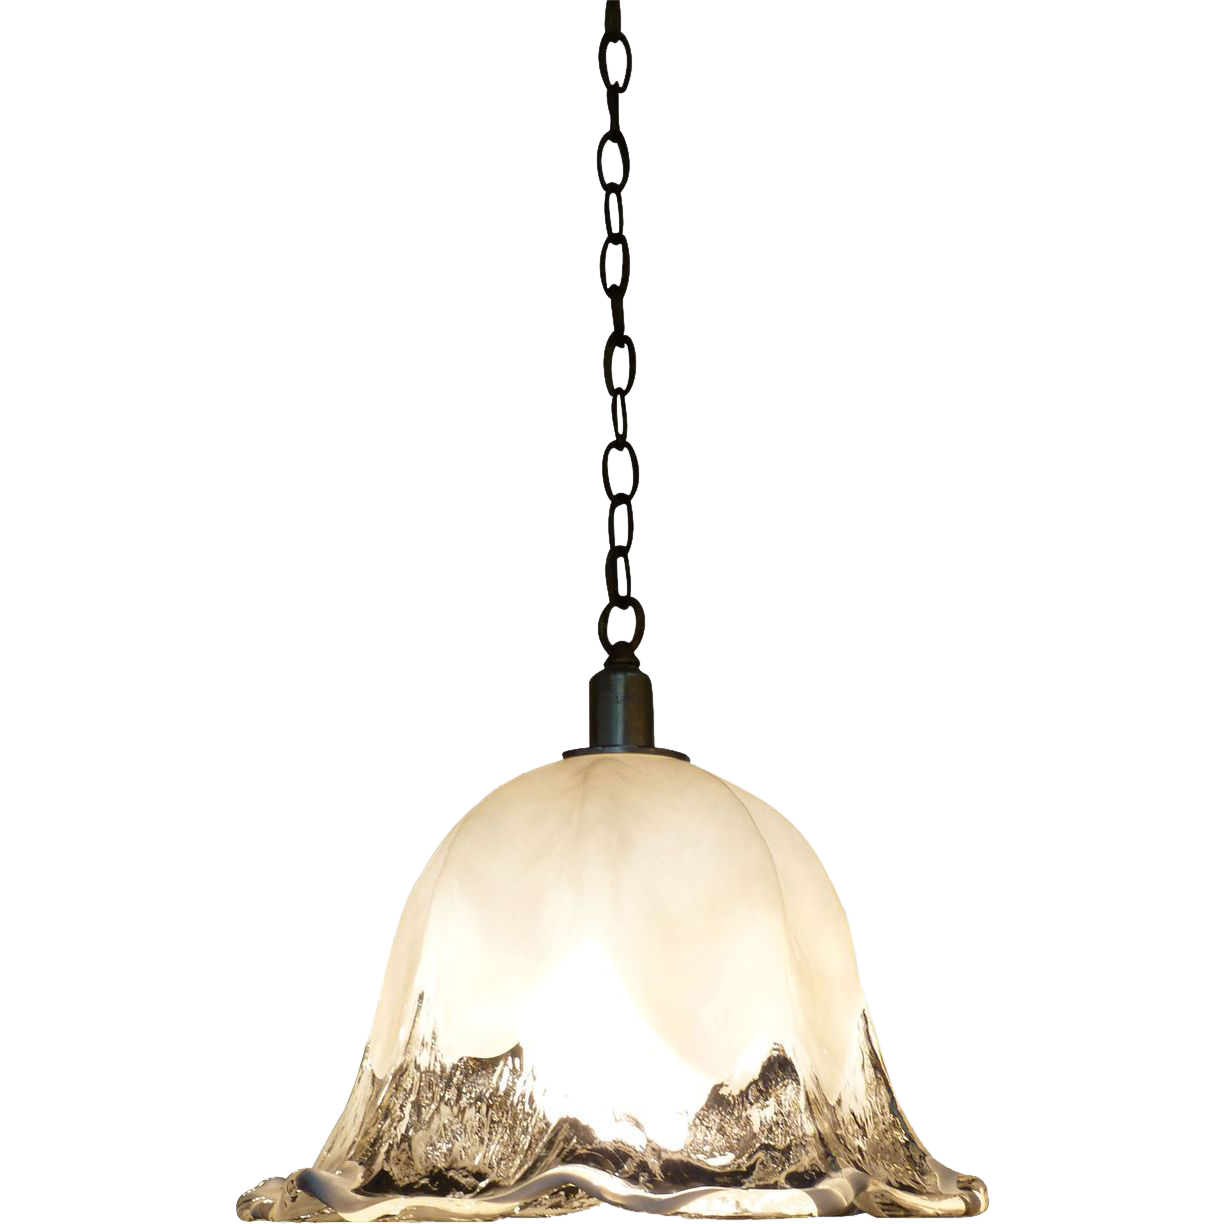 Vintage Murano glass pendant light 1970's